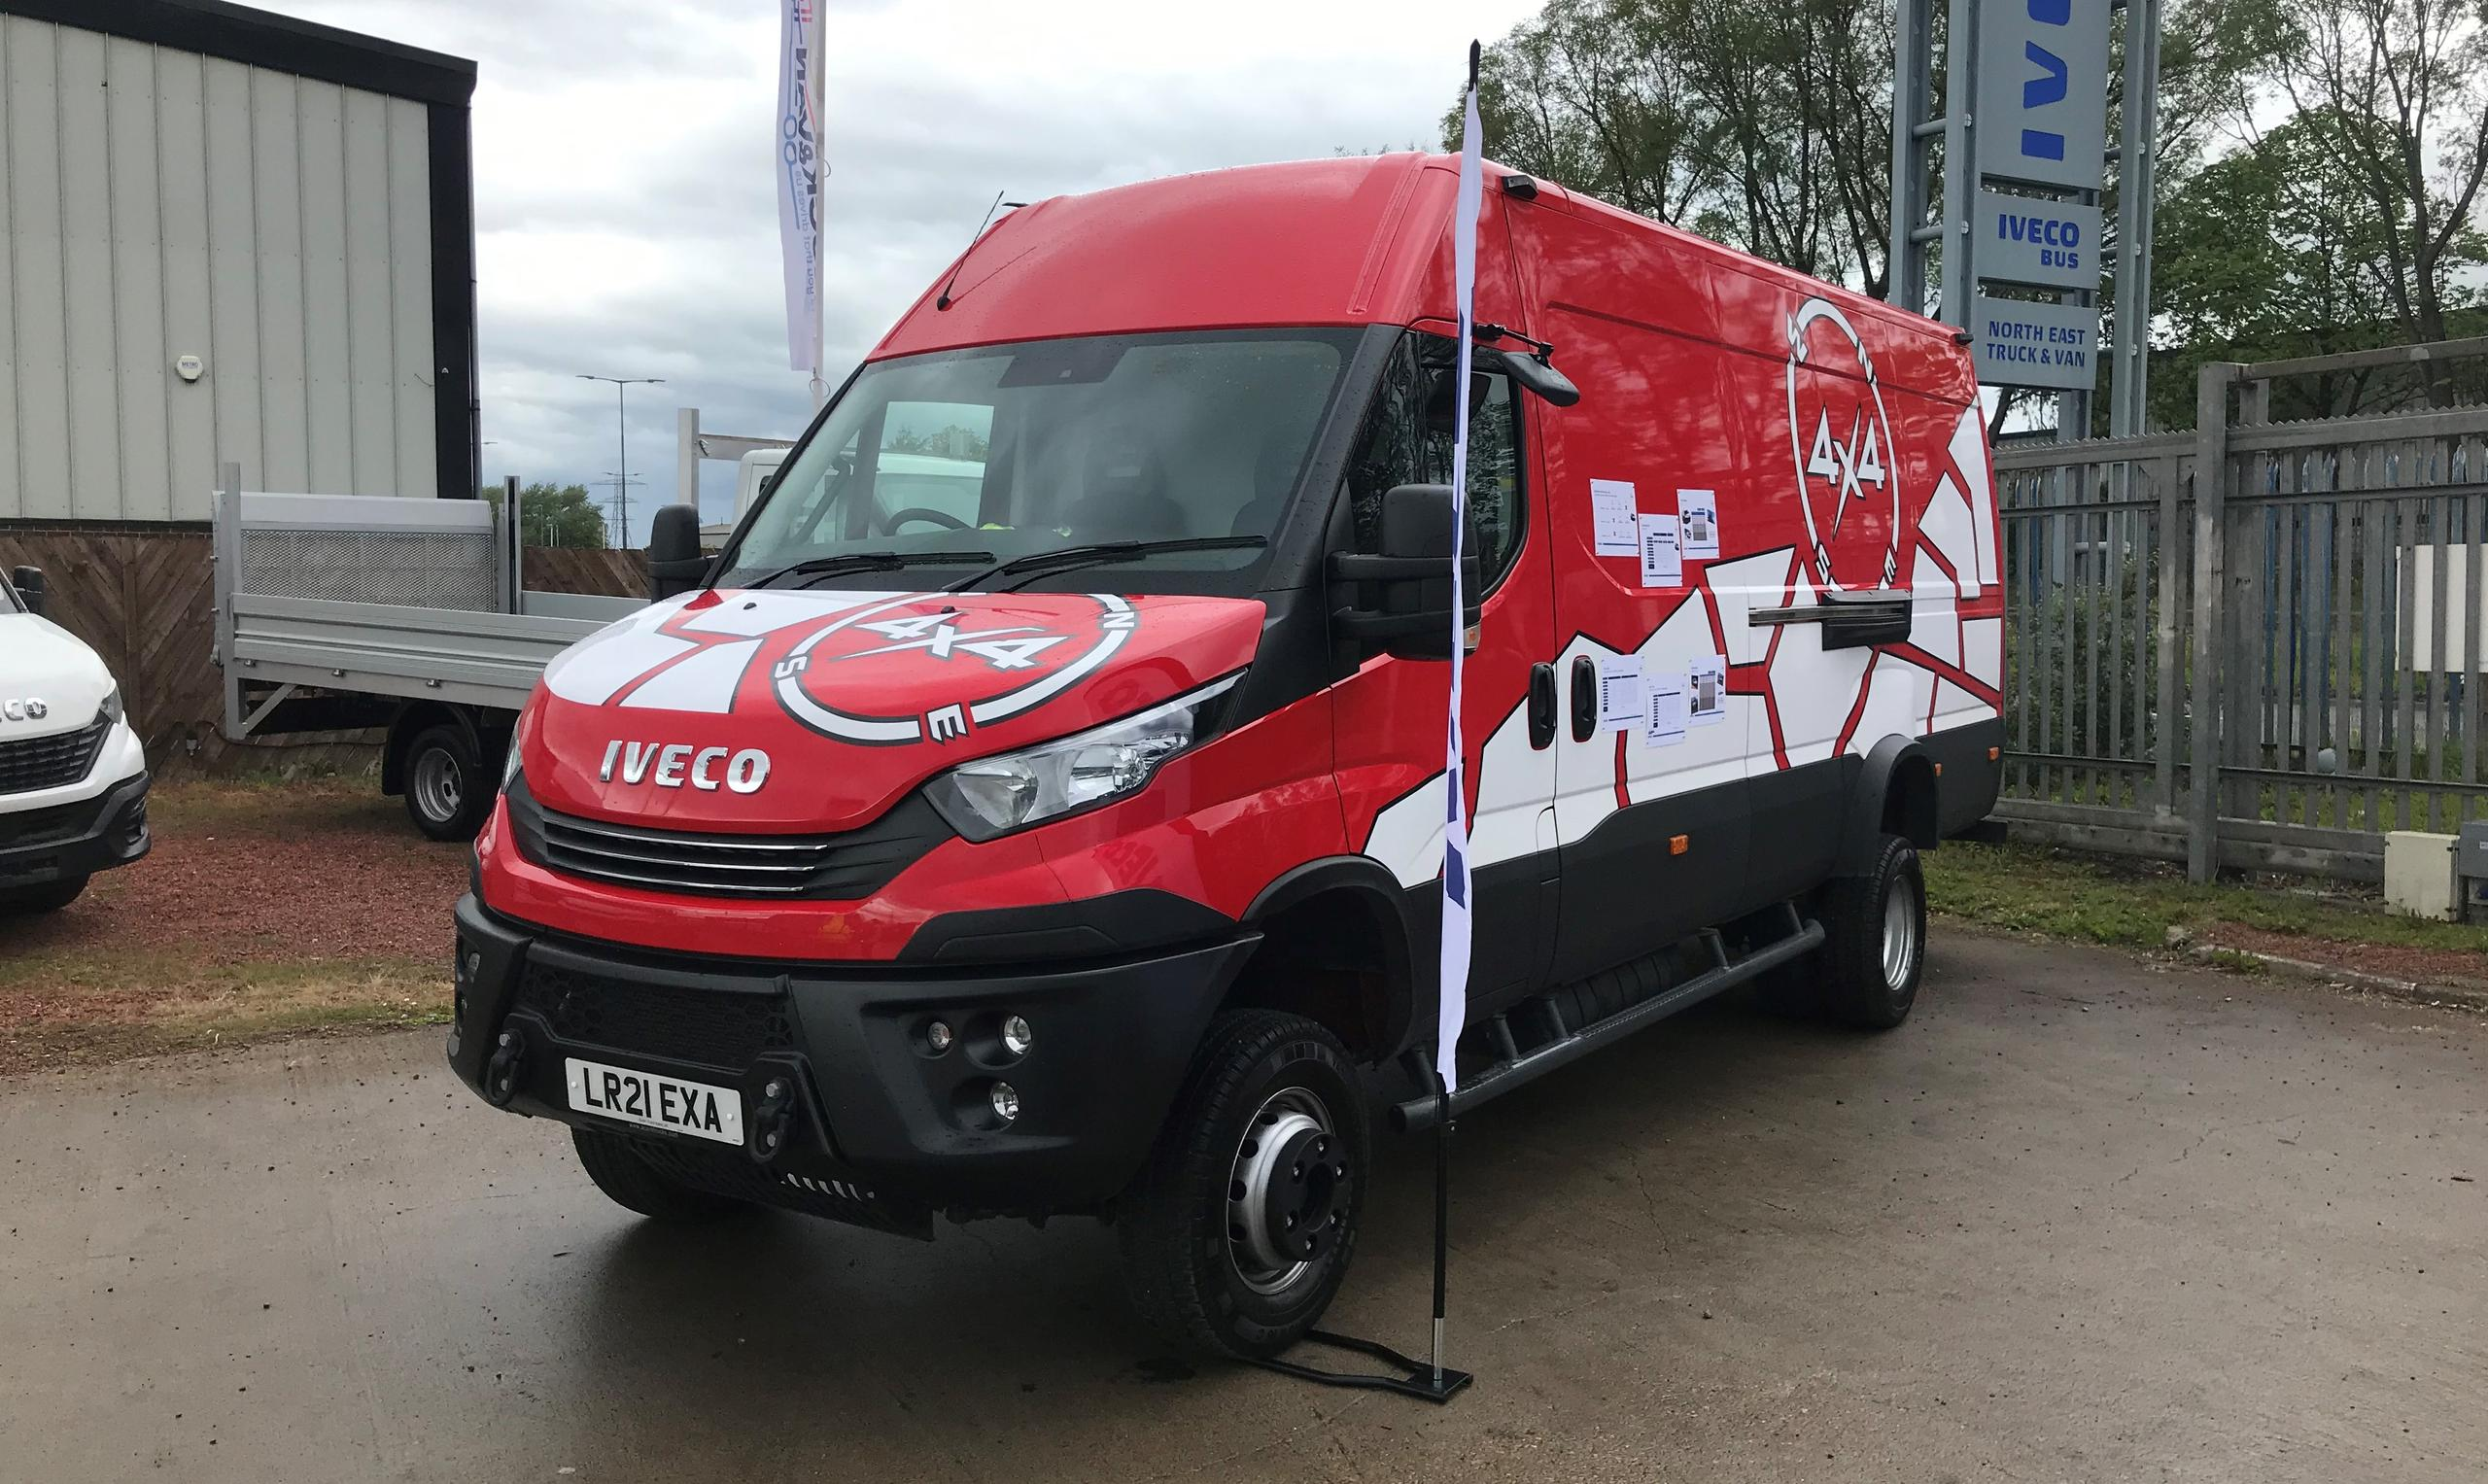 New IVECO Daily 4x4 demo returning to North East Truck and Van